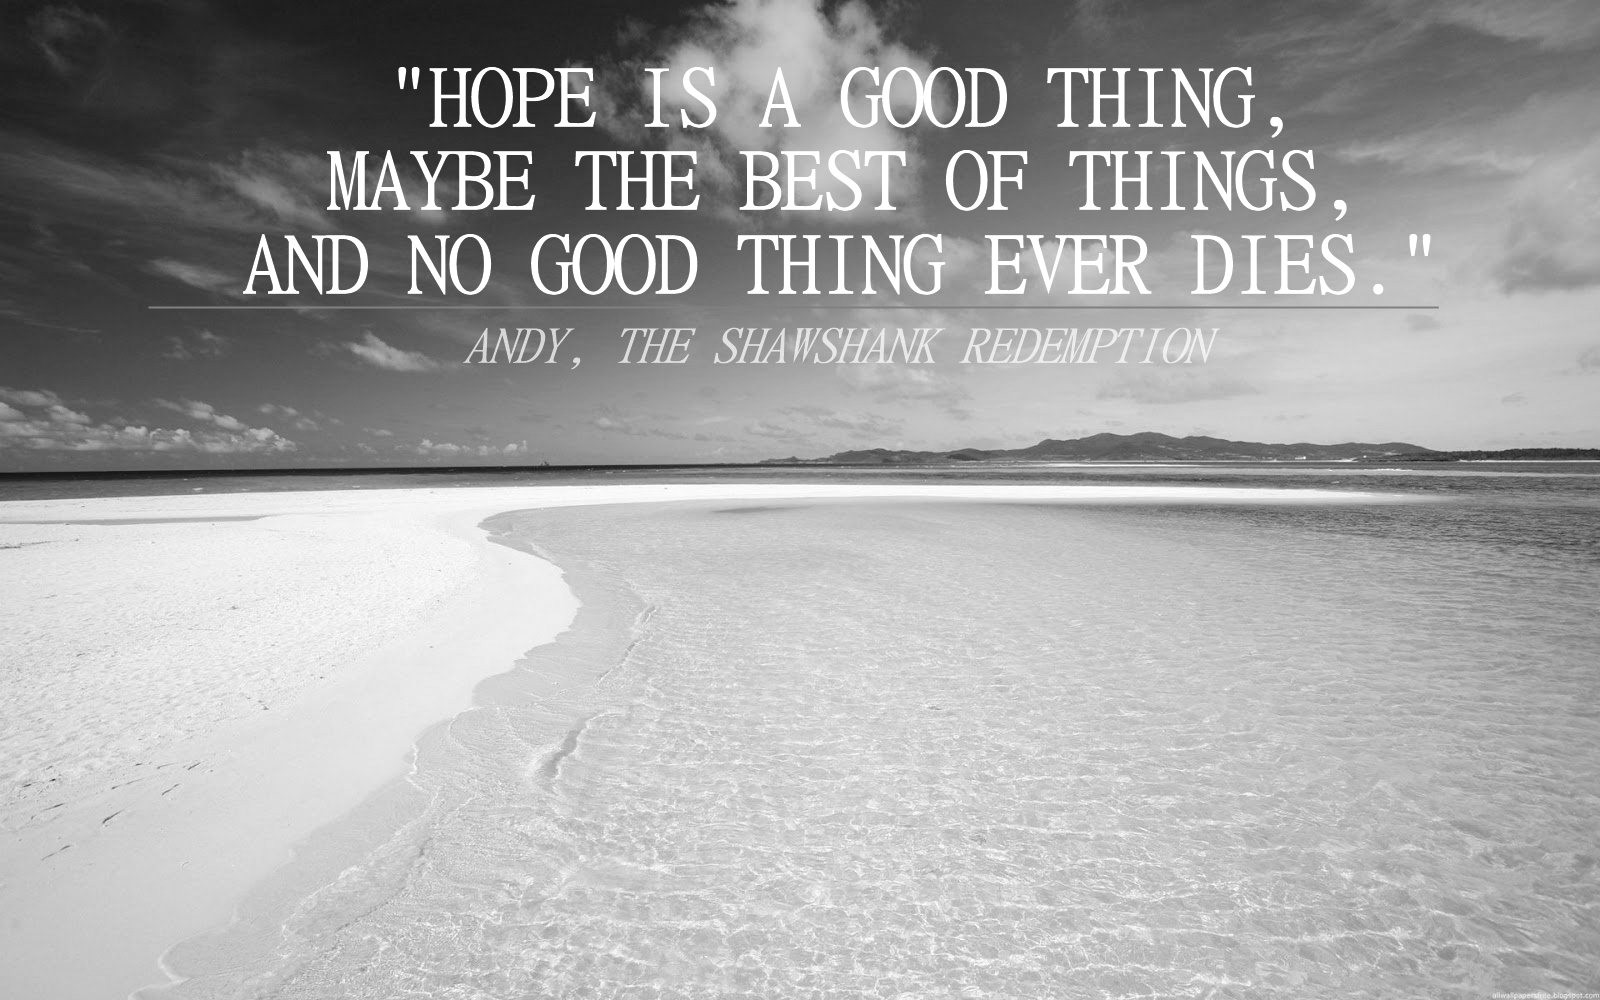 hope-quotes-hope-is-a-good-thing-maybe-the-best-of-thing-and-no-good-thing-ever-dies